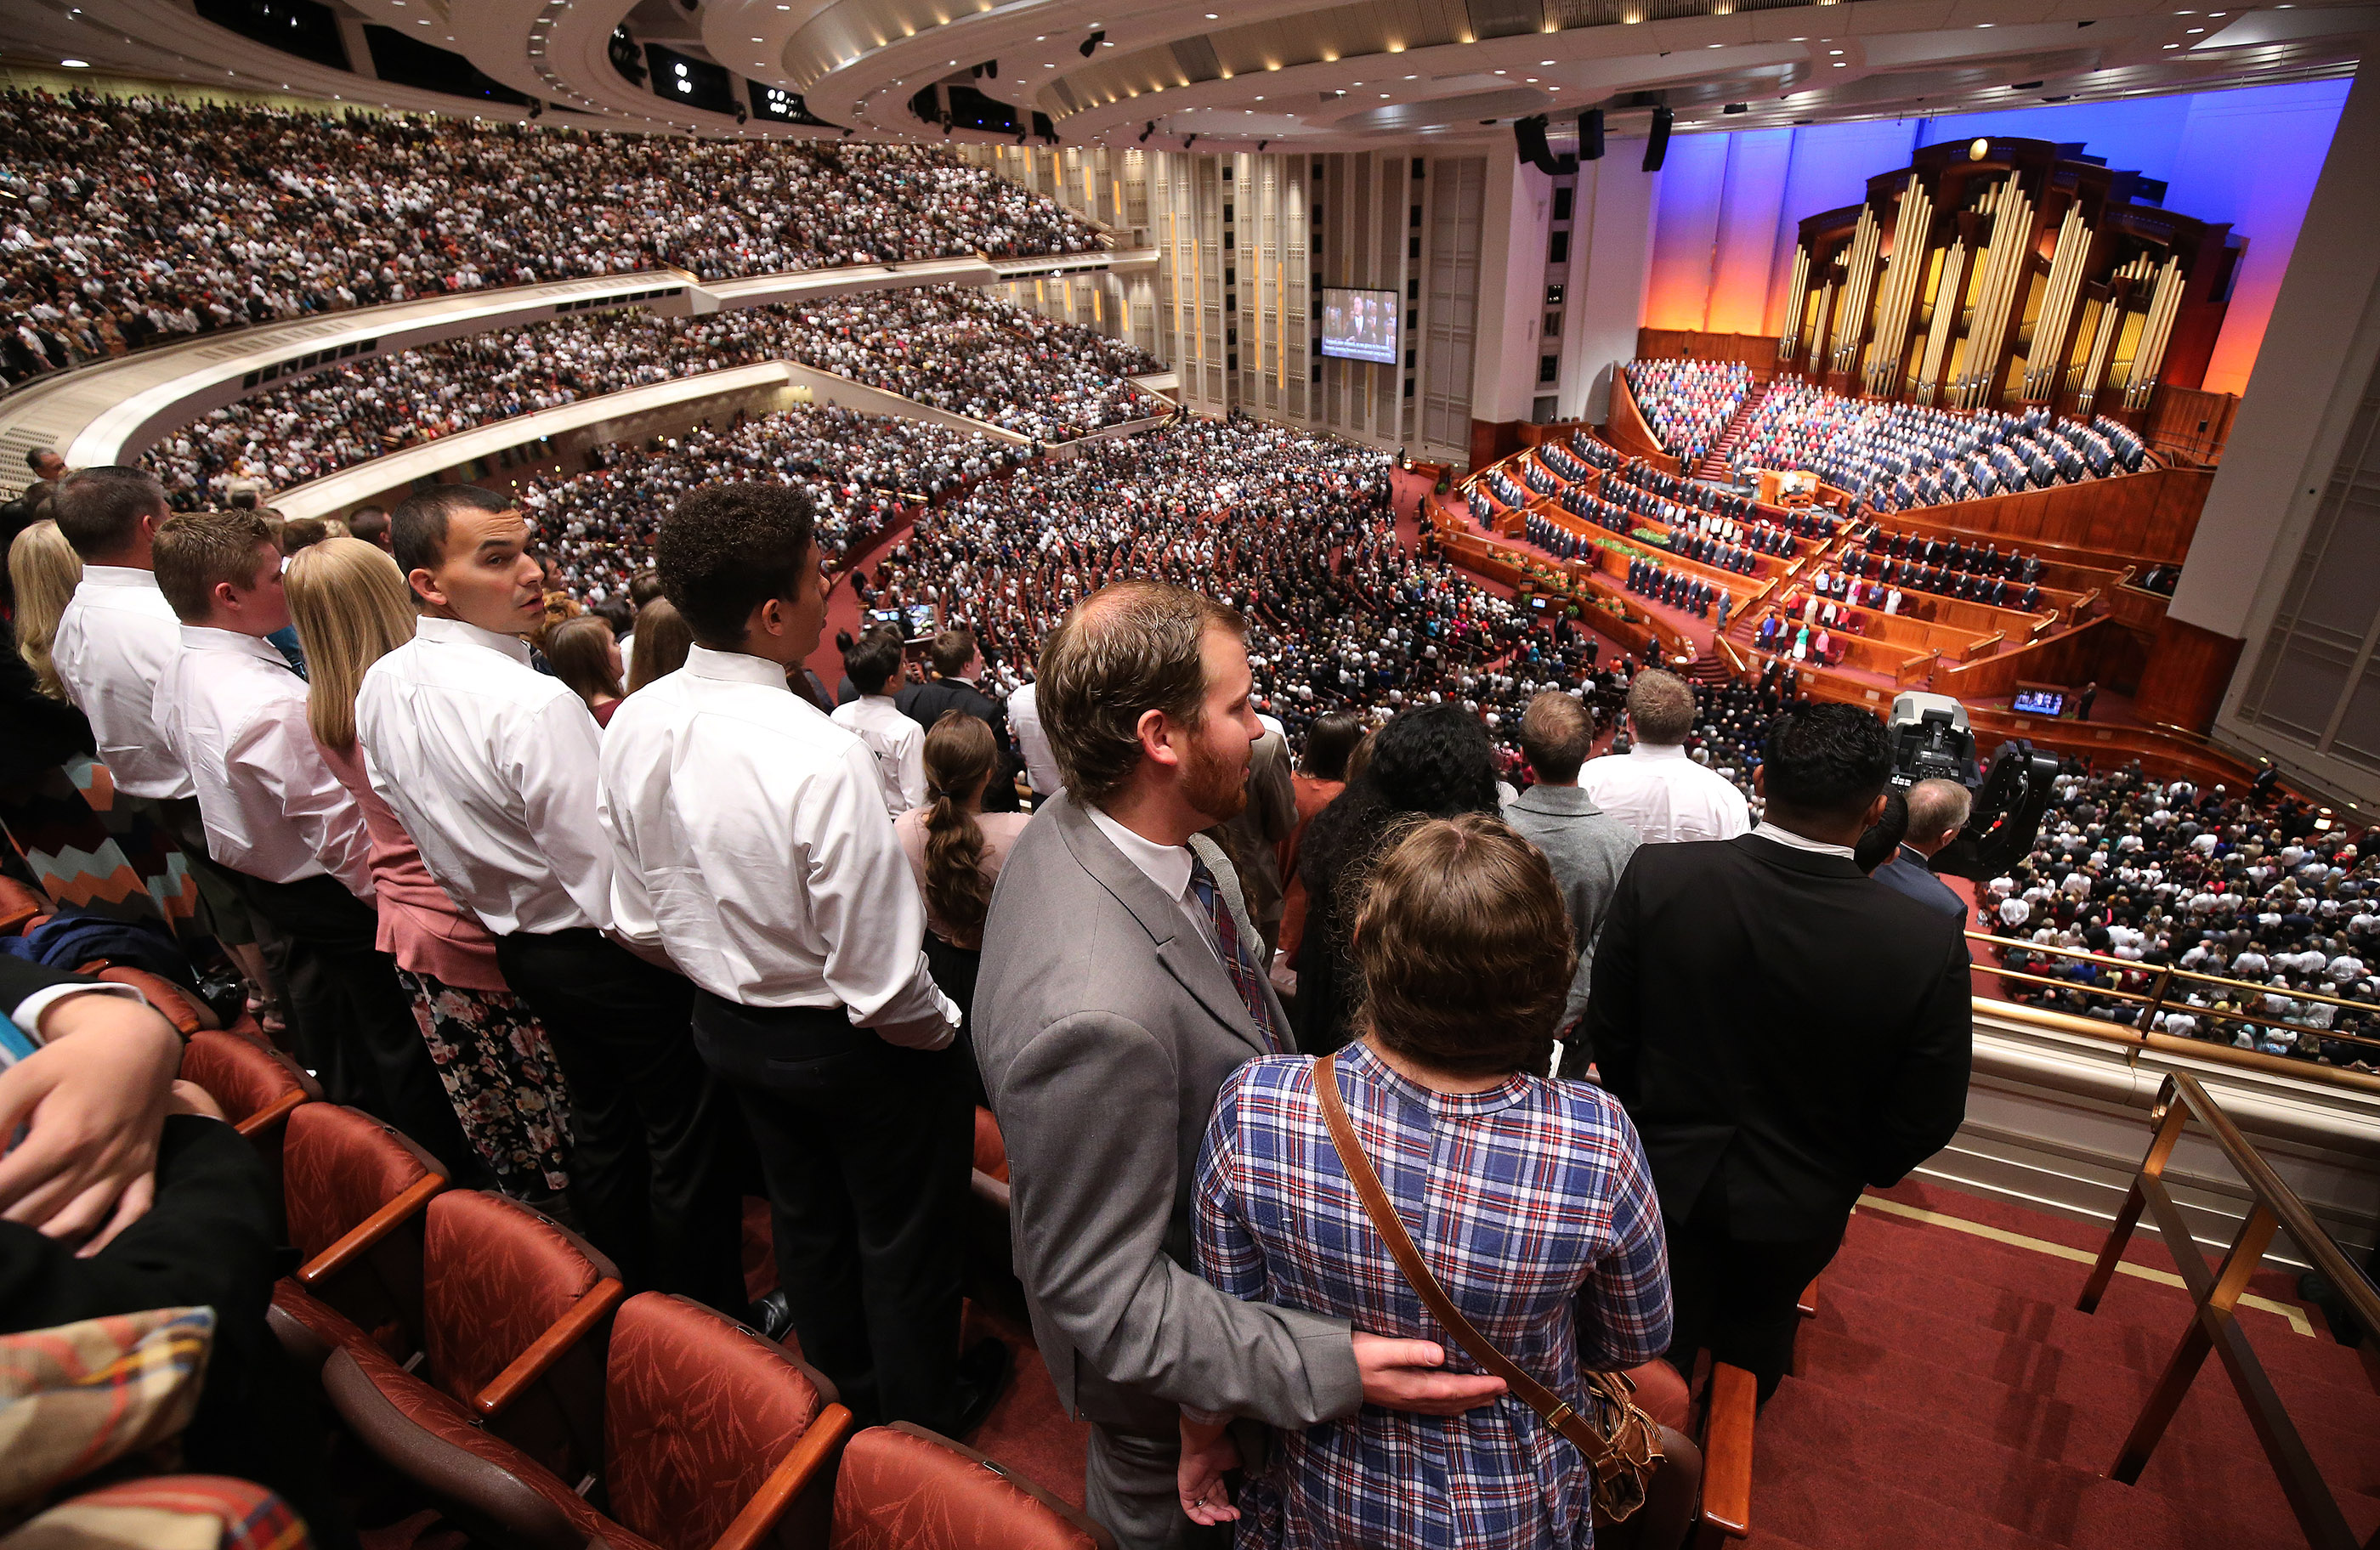 Attendees sing a congregational hymn during the Saturday afternoon session of the 188th Semiannual General Conference of The Church of Jesus Christ of Latter-day Saints in the Conference Center in Salt Lake City on Saturday, Oct. 6, 2018.